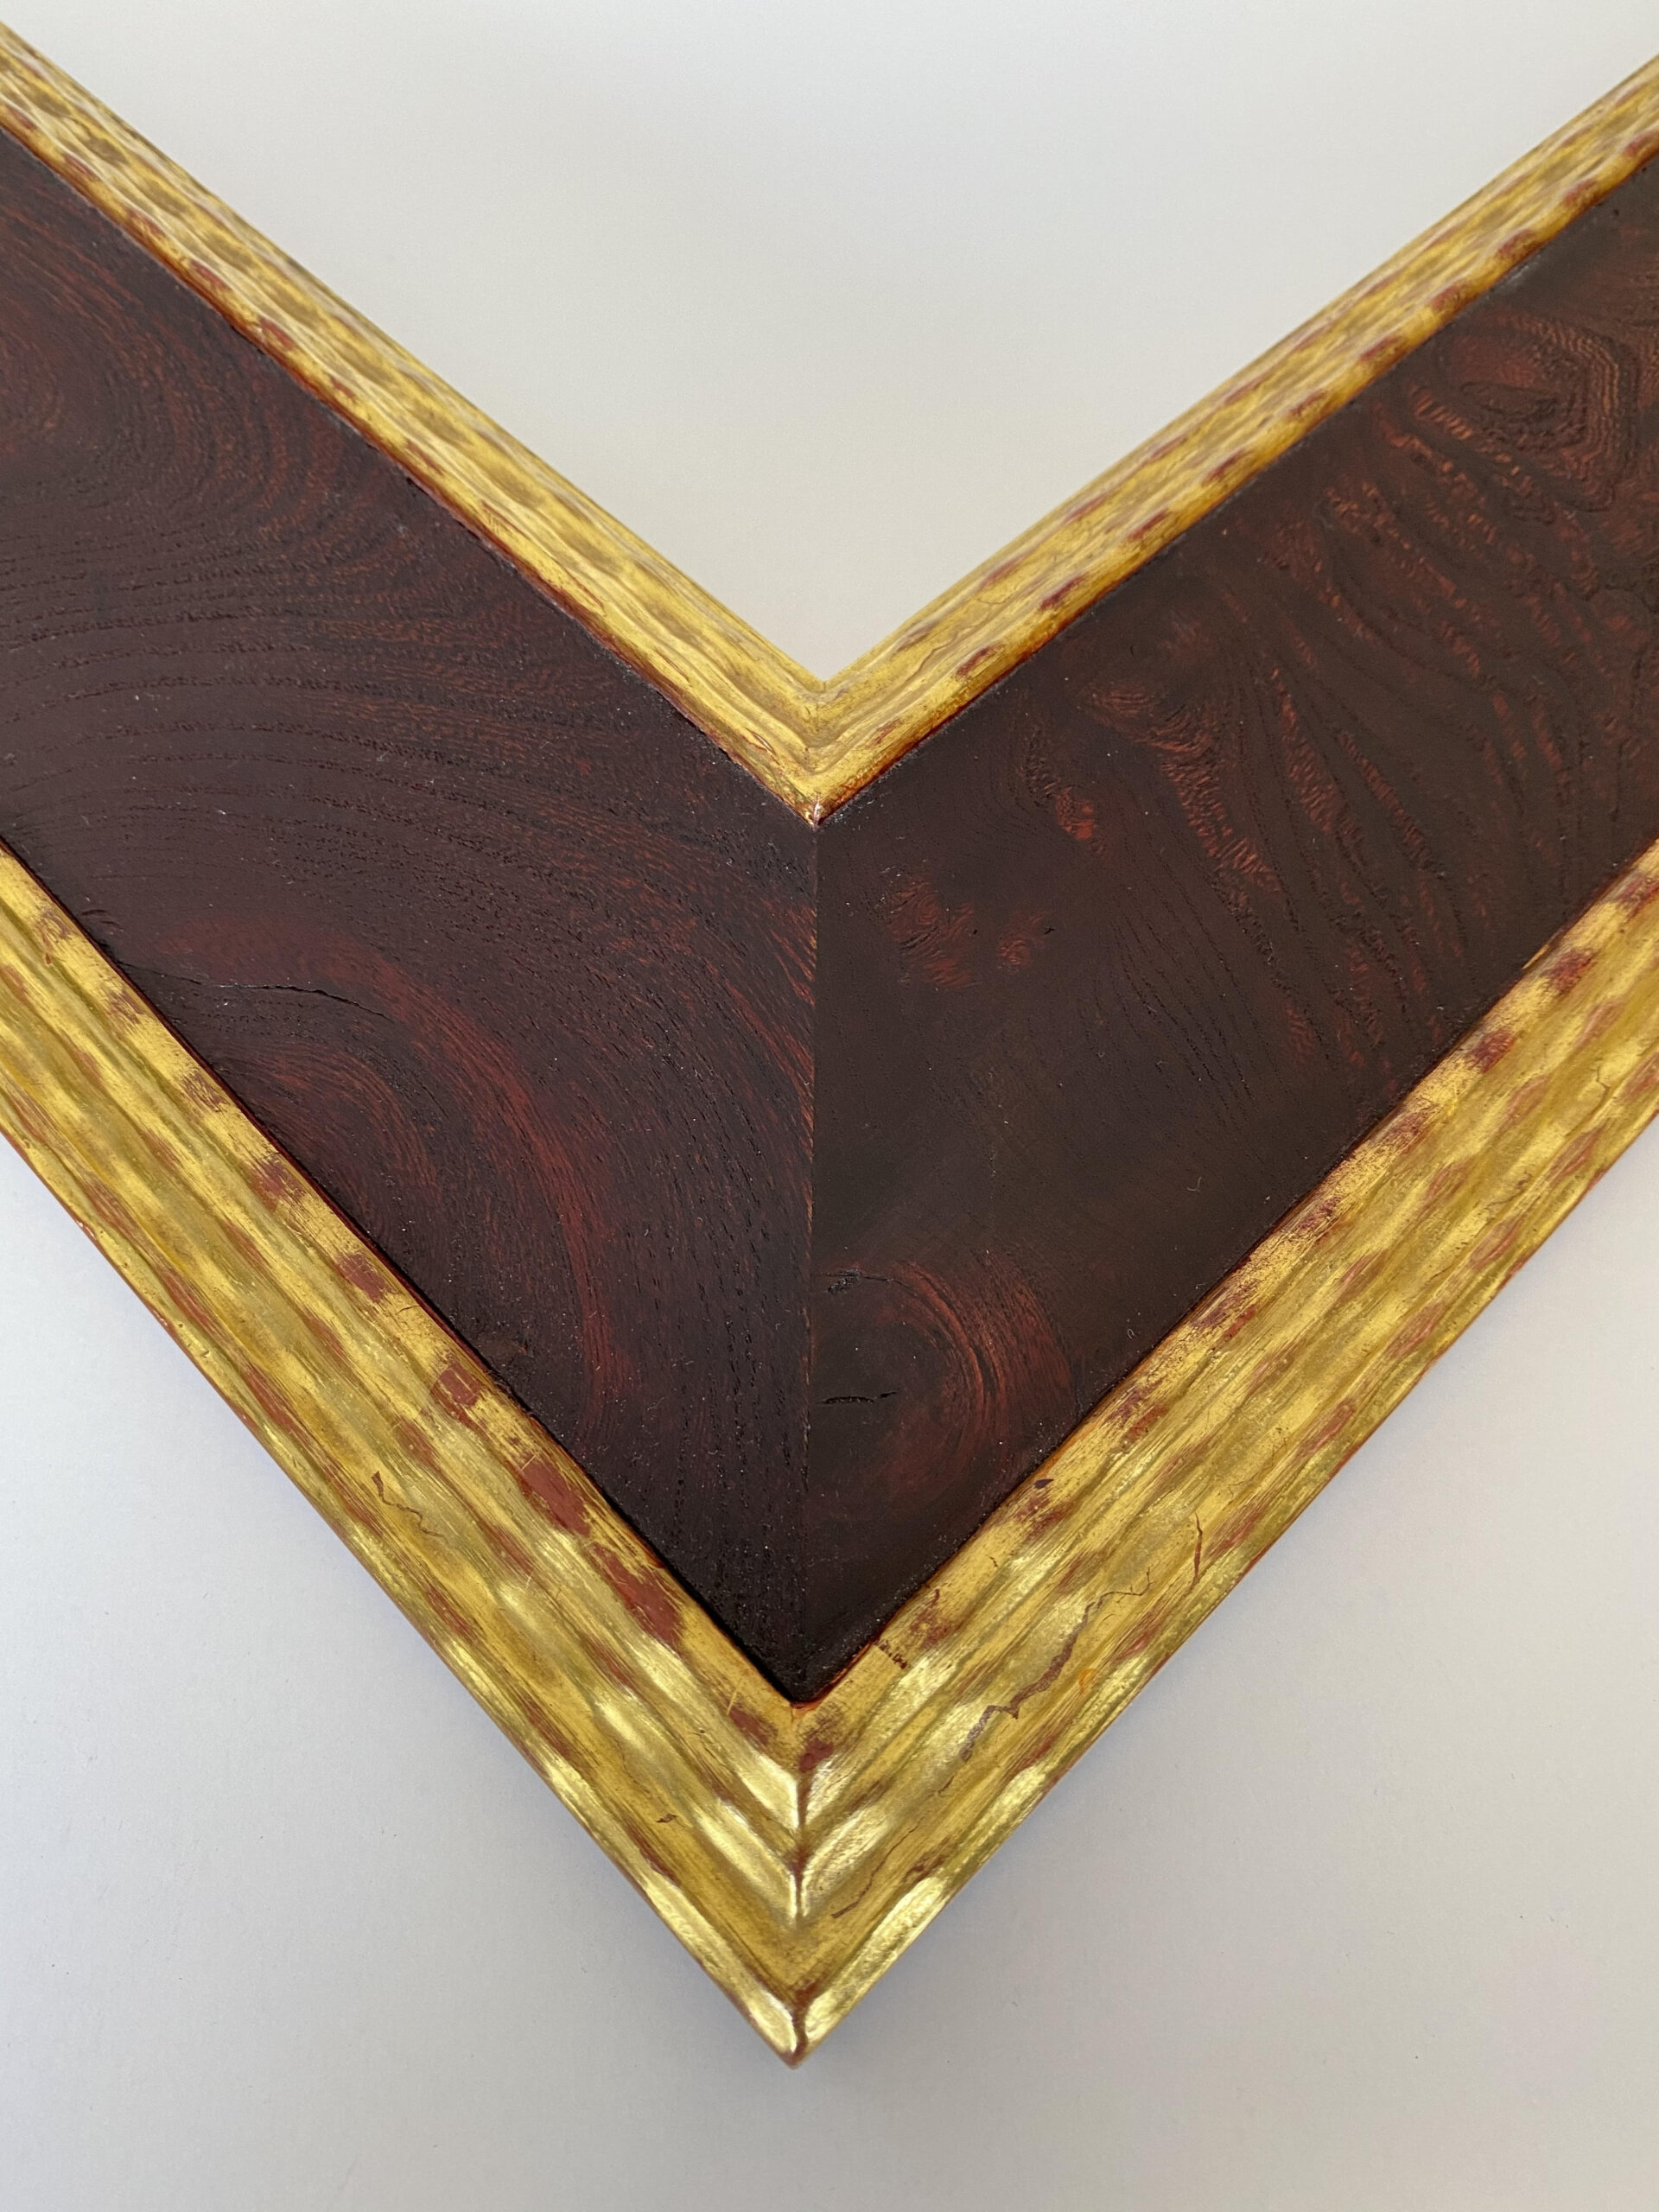 Red finsihed burled wood panel with 22k gilt lip and exterior edge. Artifact services custom frames. Artmill Group chicago